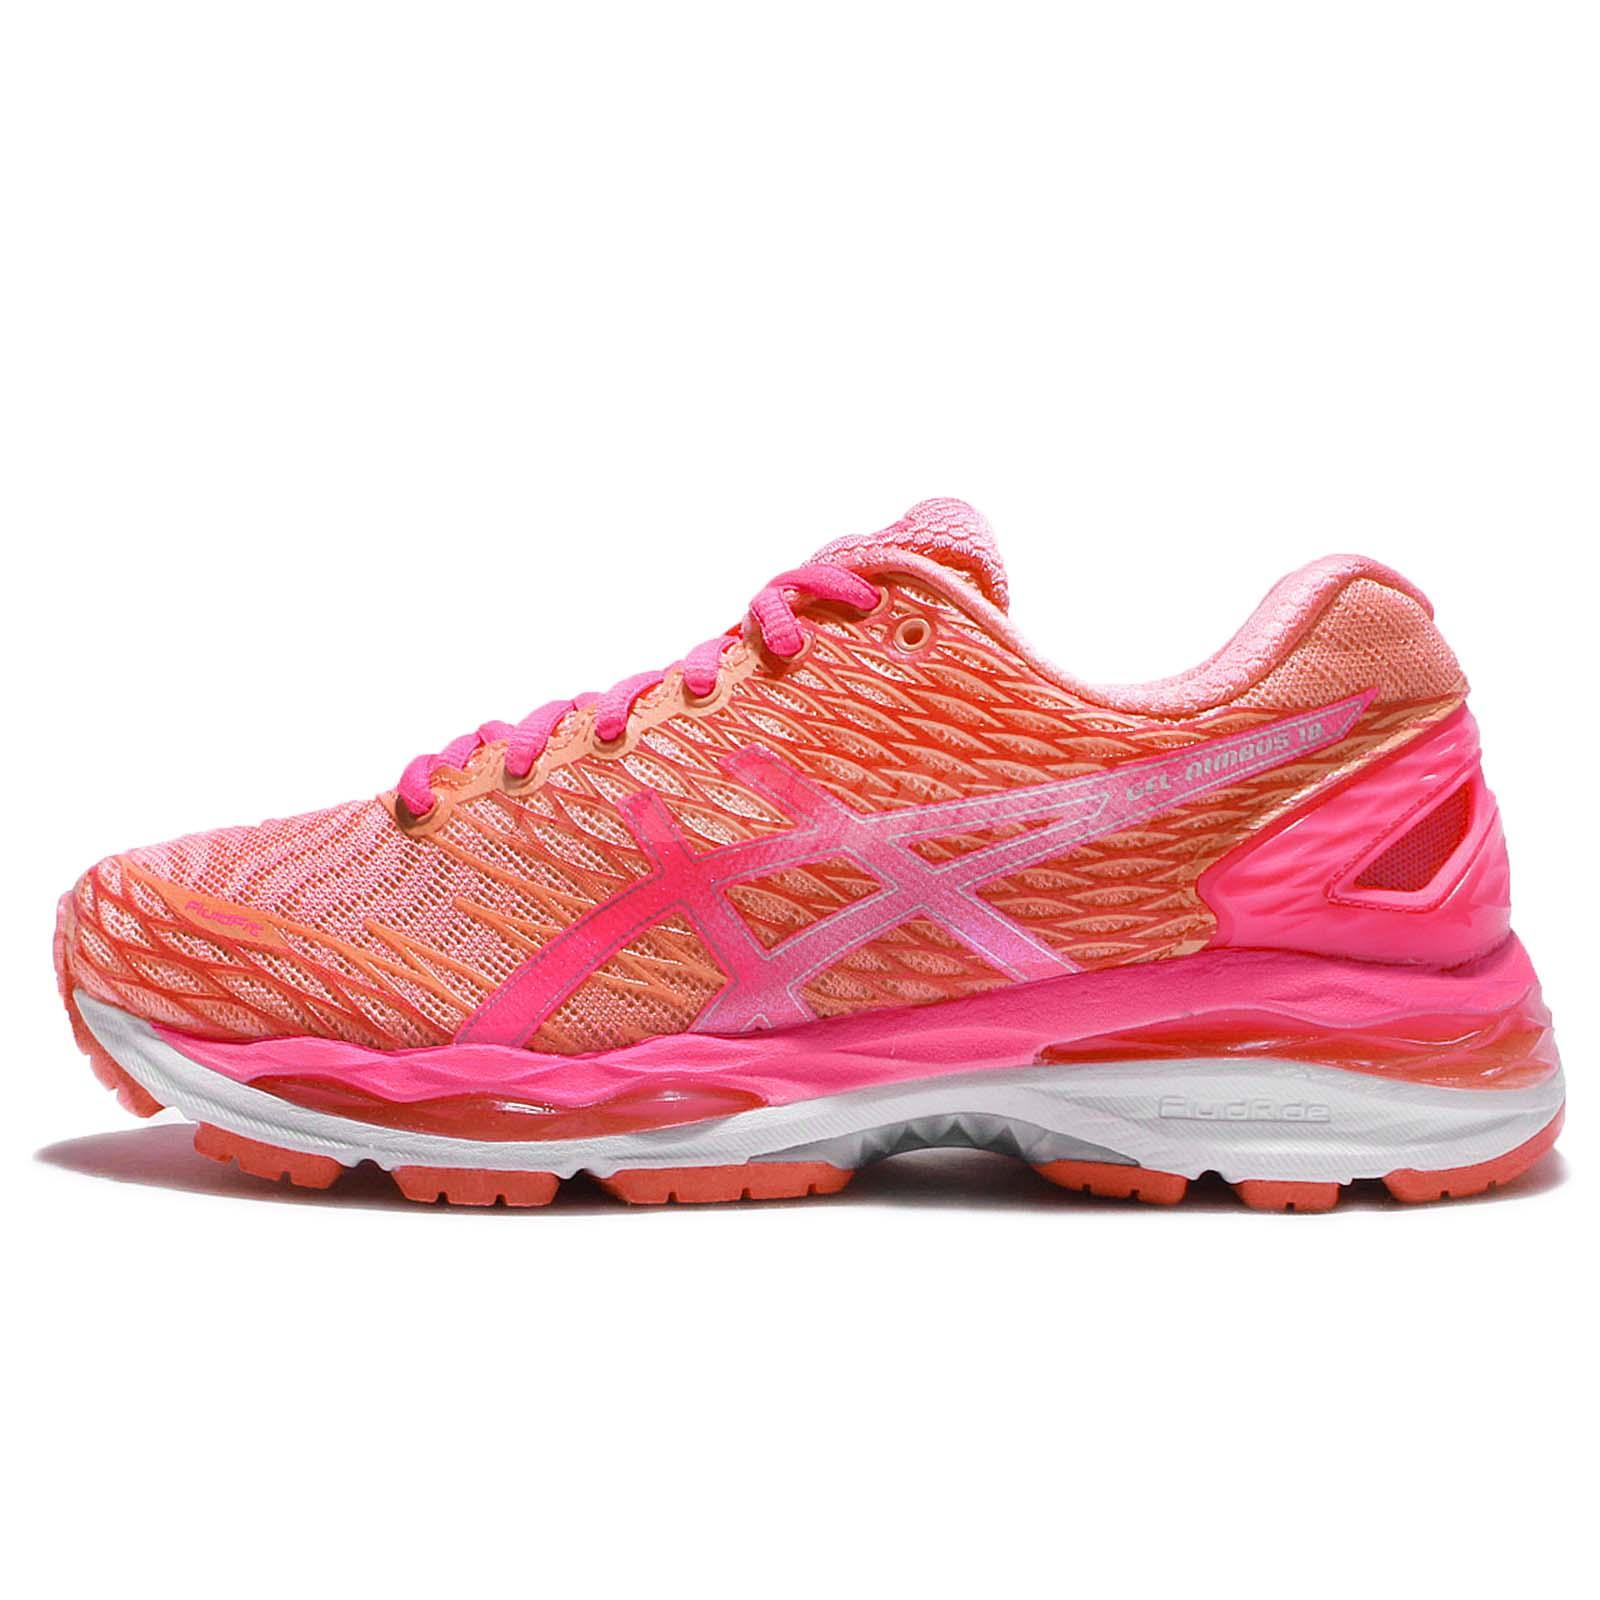 Asics Gel Nimbus 18 Womens